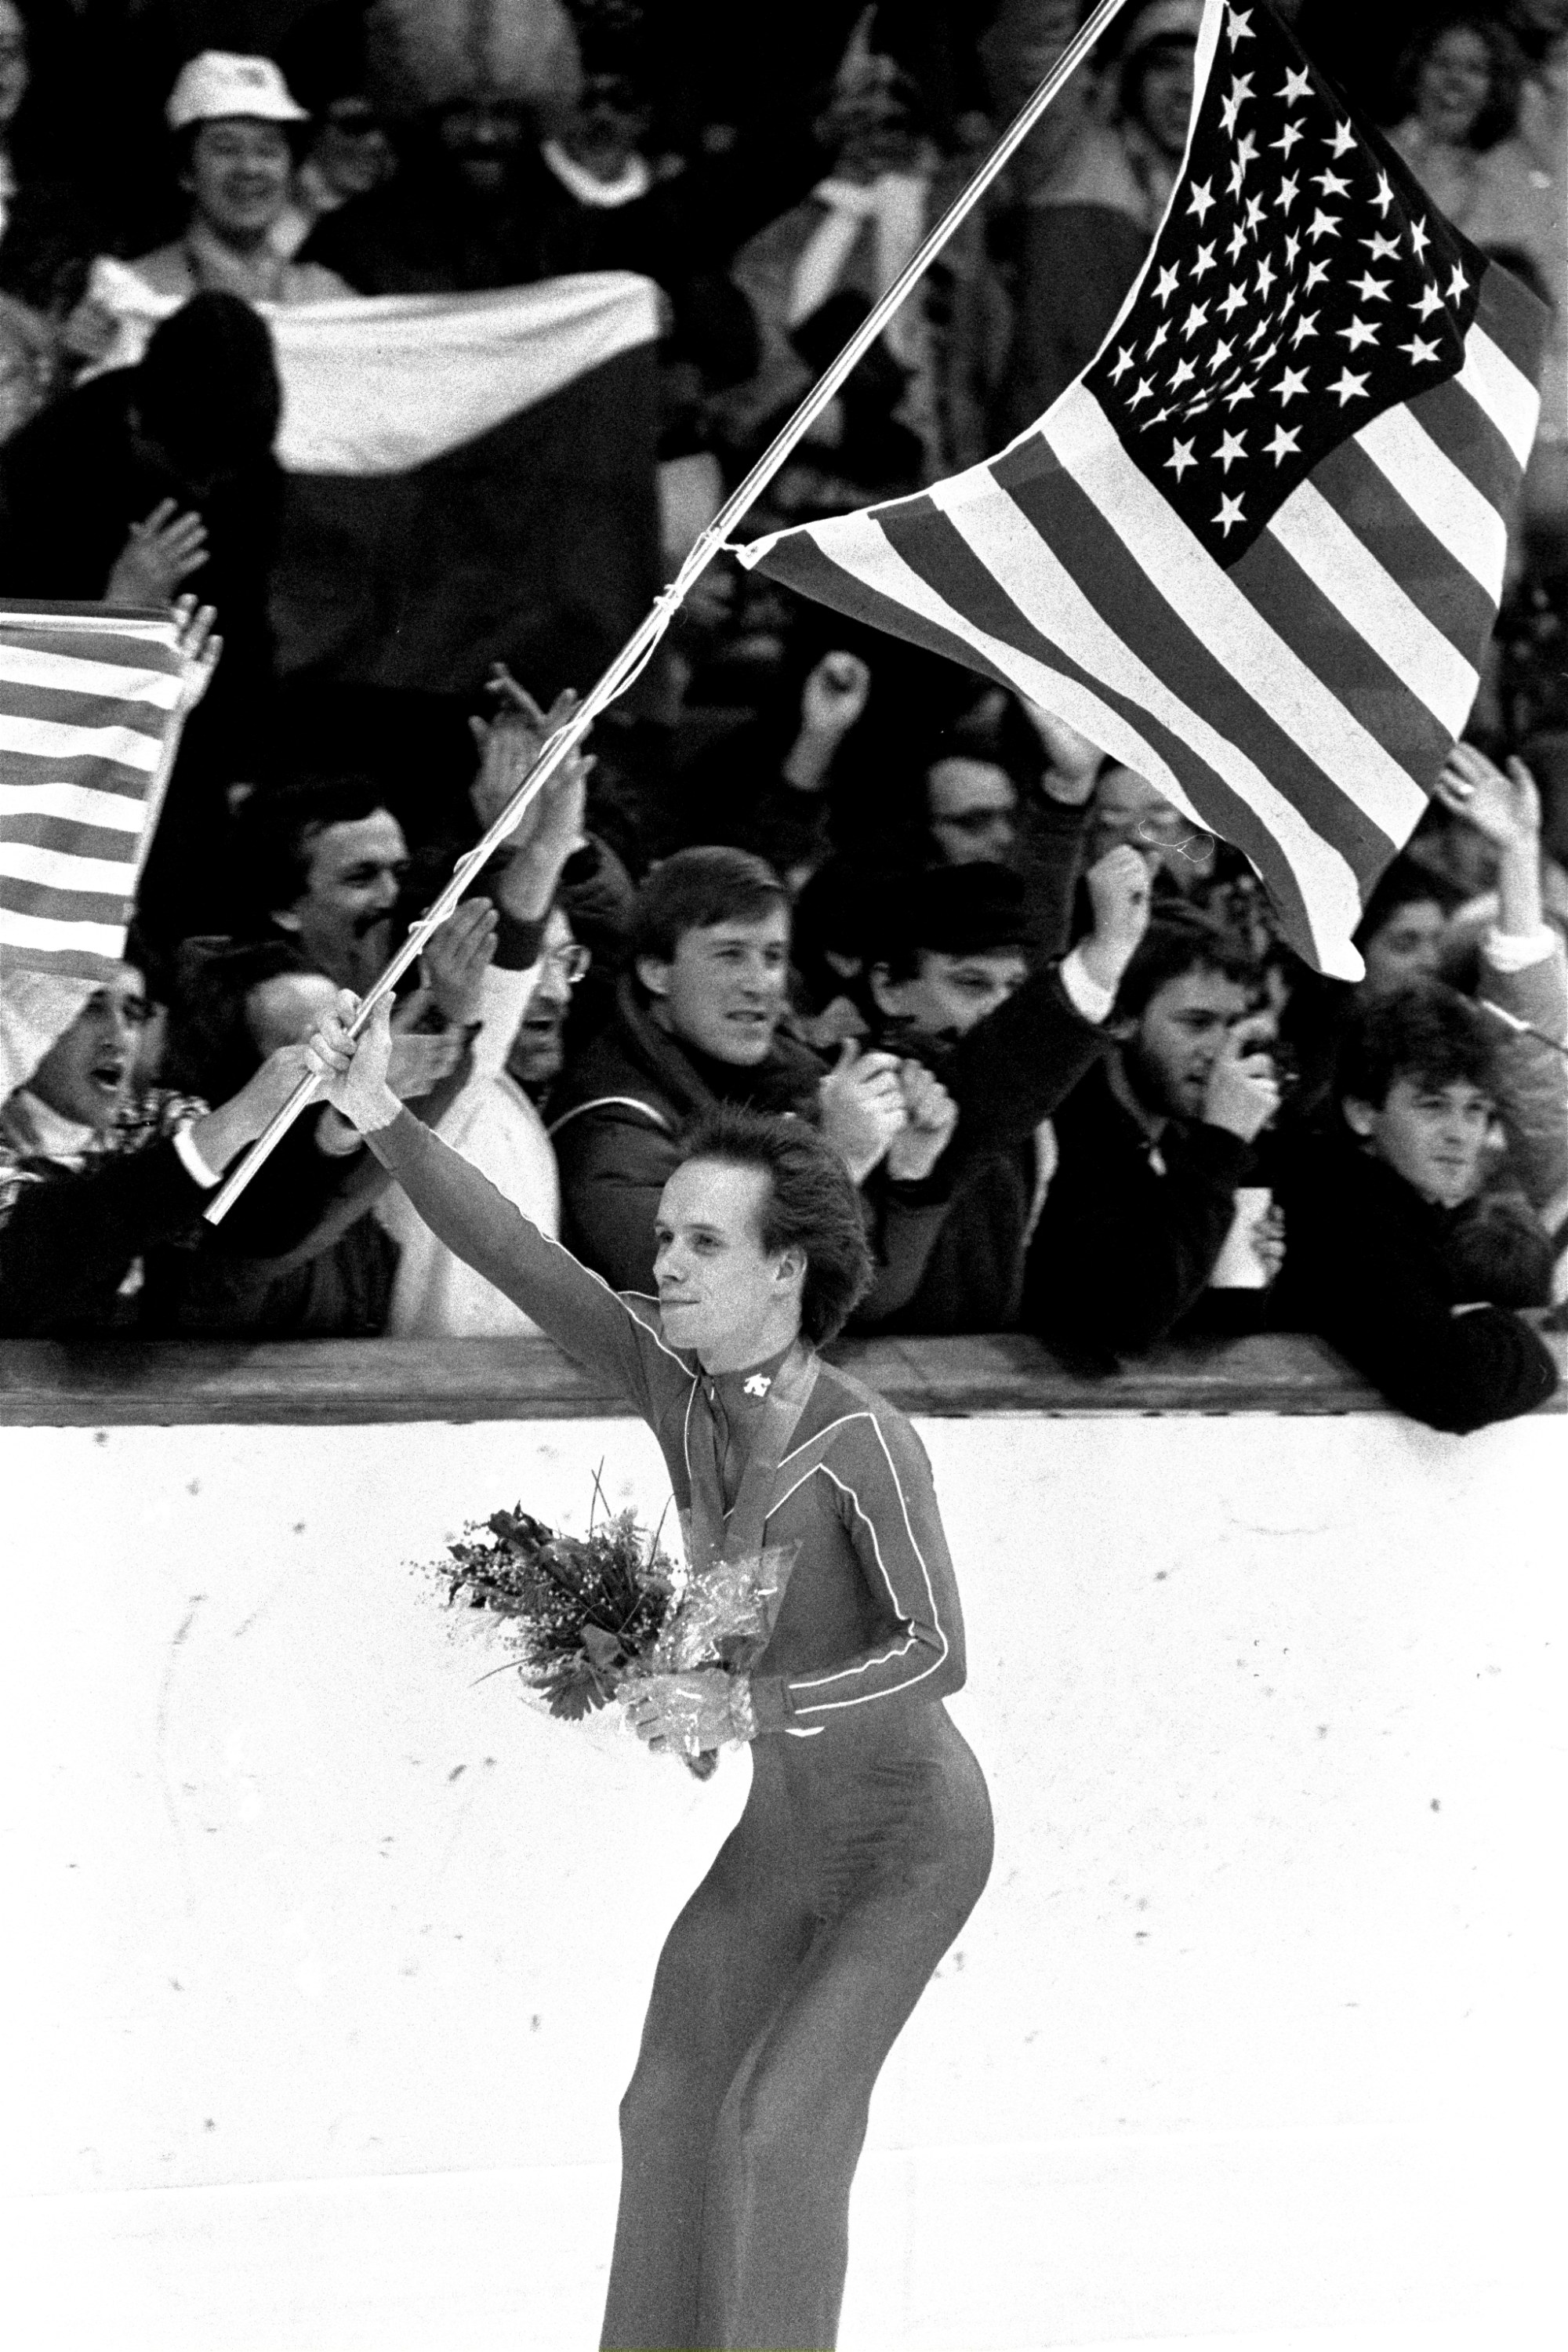 """FILE - In this Feb. 16, 1984 file photo, figure skater Scott Hamilton of the United States carries an American flag past a cheering crowd after he was awarded a gold medal in figure skating at the 1984 Winter Games at Zetra's ice rink in Sarajevo. In the thirty years since his victory, Hamilton has pretty much reinvented professional figure skating by creating """"Stars On Ice"""" and has been the voice of the sport for decades. (AP Photo/File)"""